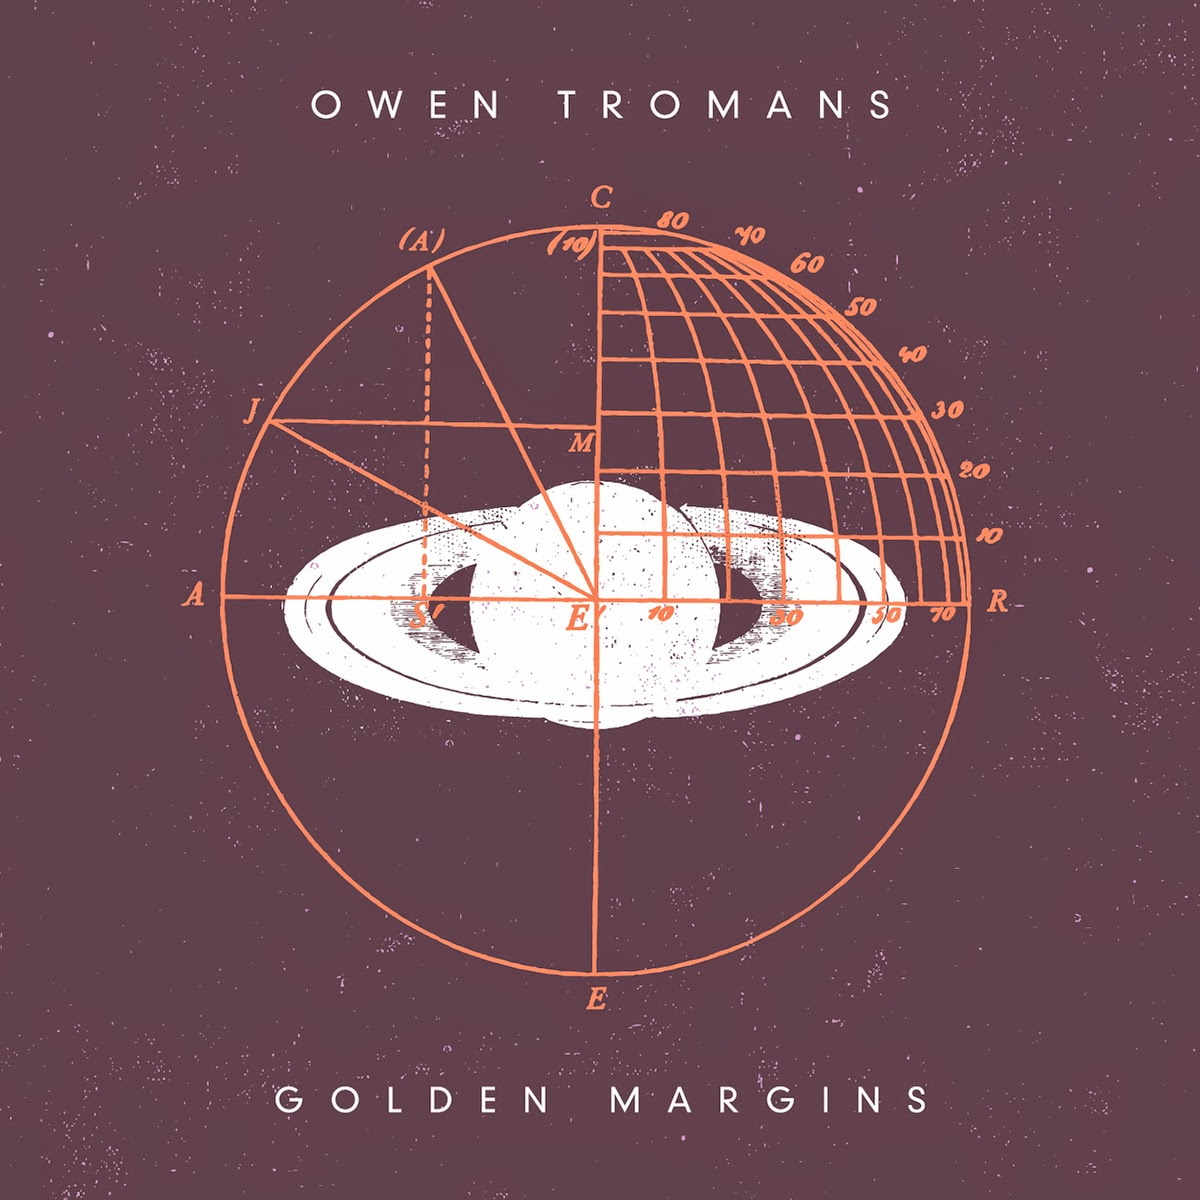 http://www.d4am.net/2014/04/owen-tromans-golden-margins.html